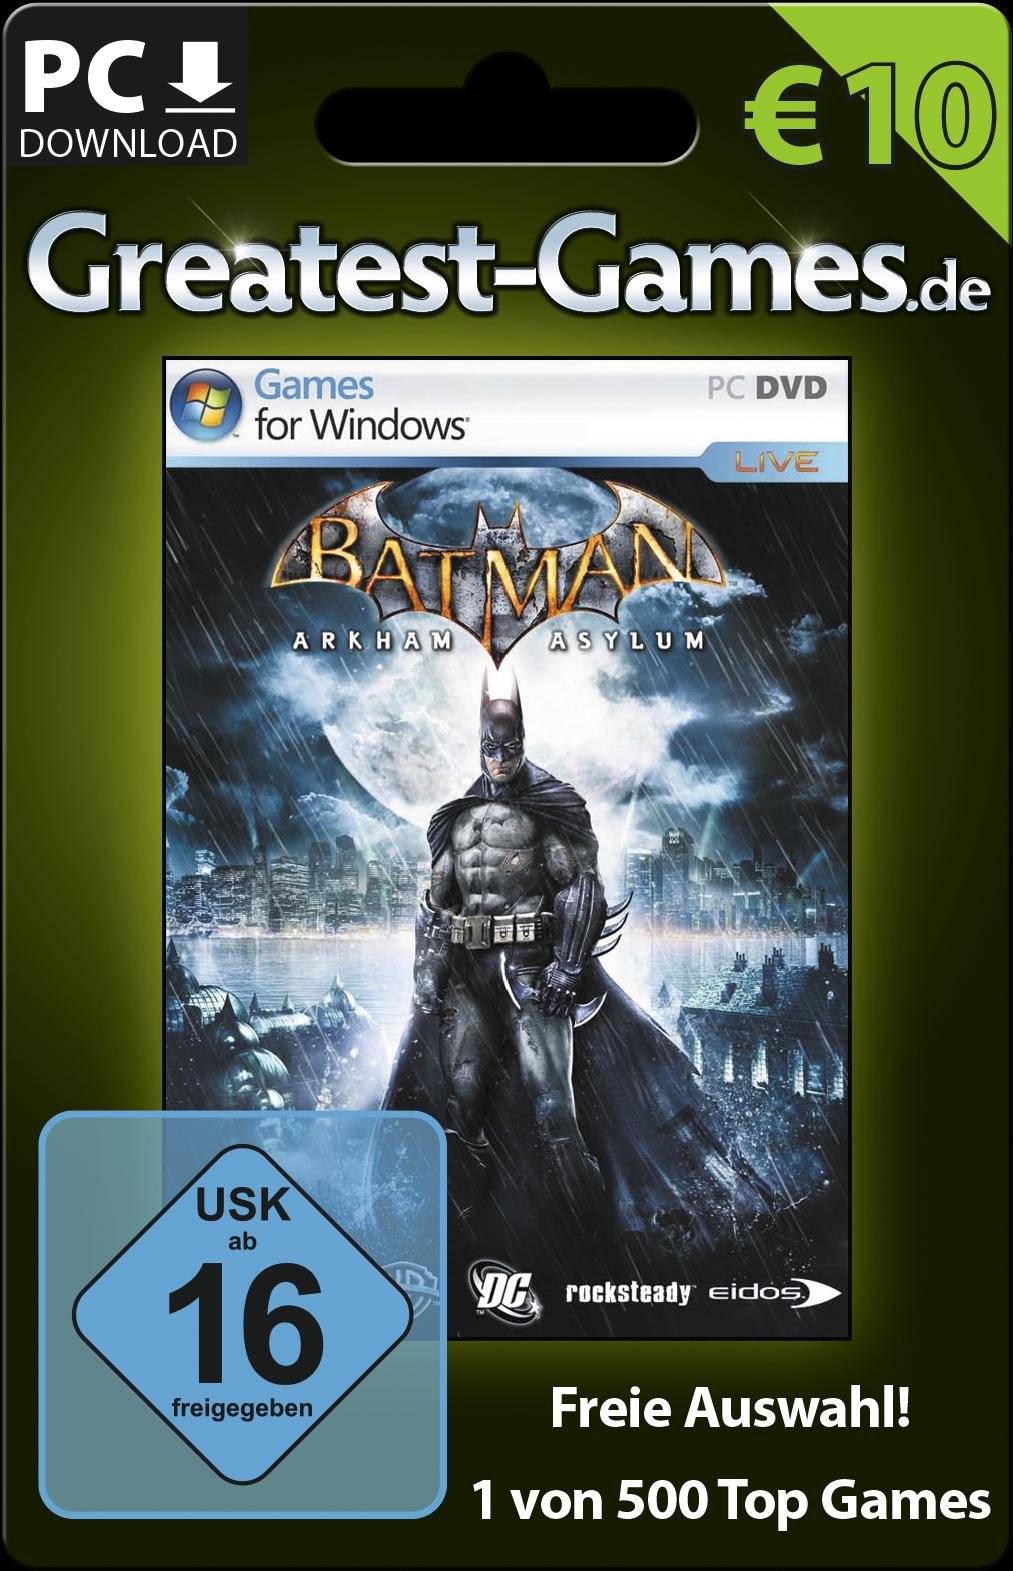 Game-Card für Batman bzw. 10 Euro. (Foto: Softdistribution GmbH)